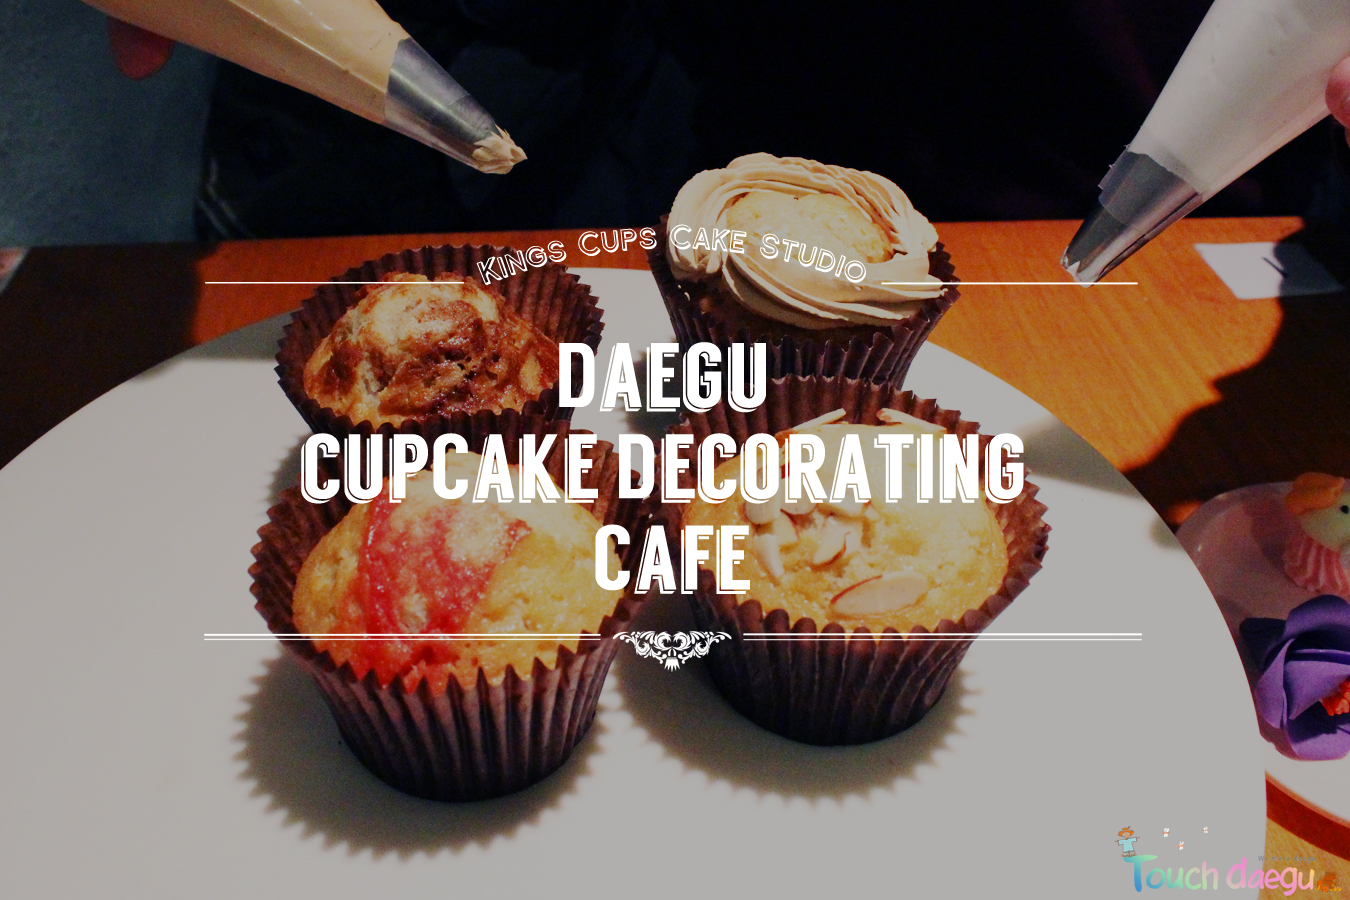 Kings Cups Cake Studio―Daegu Cake Decorating Café